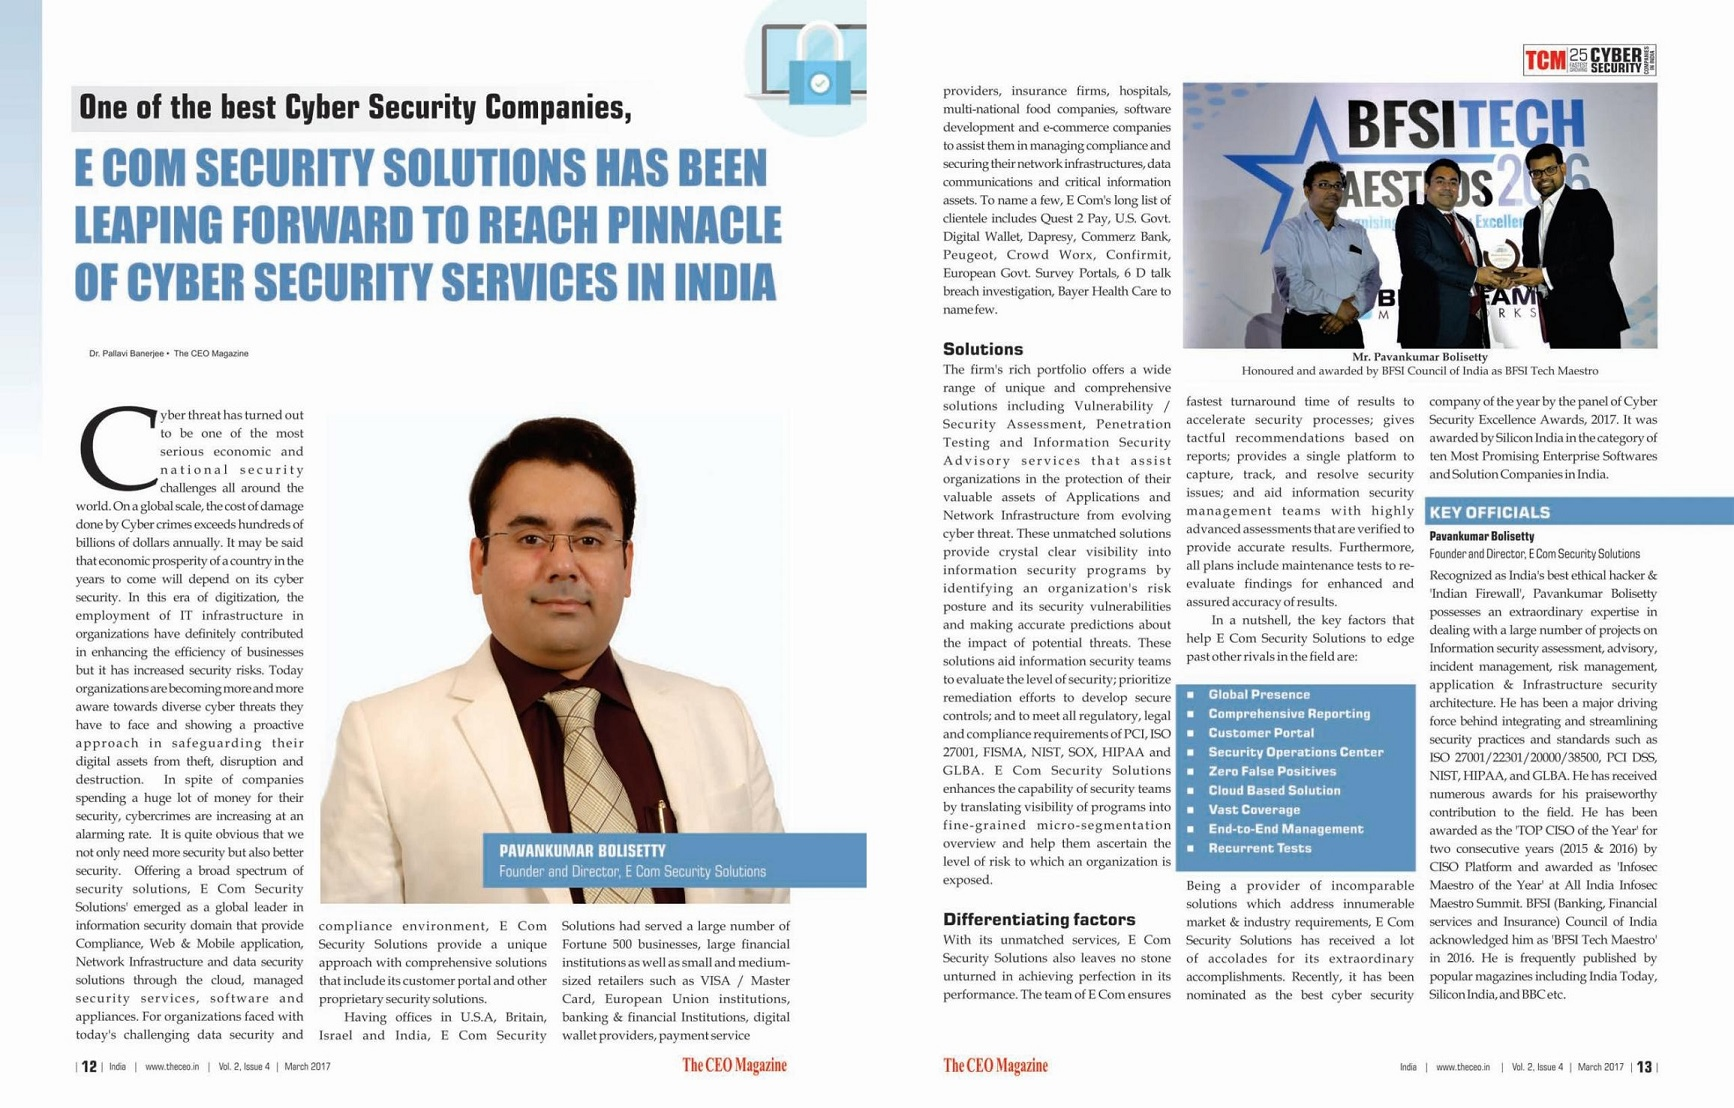 E Com Security Solutions Named 2017 Best Cyber Security